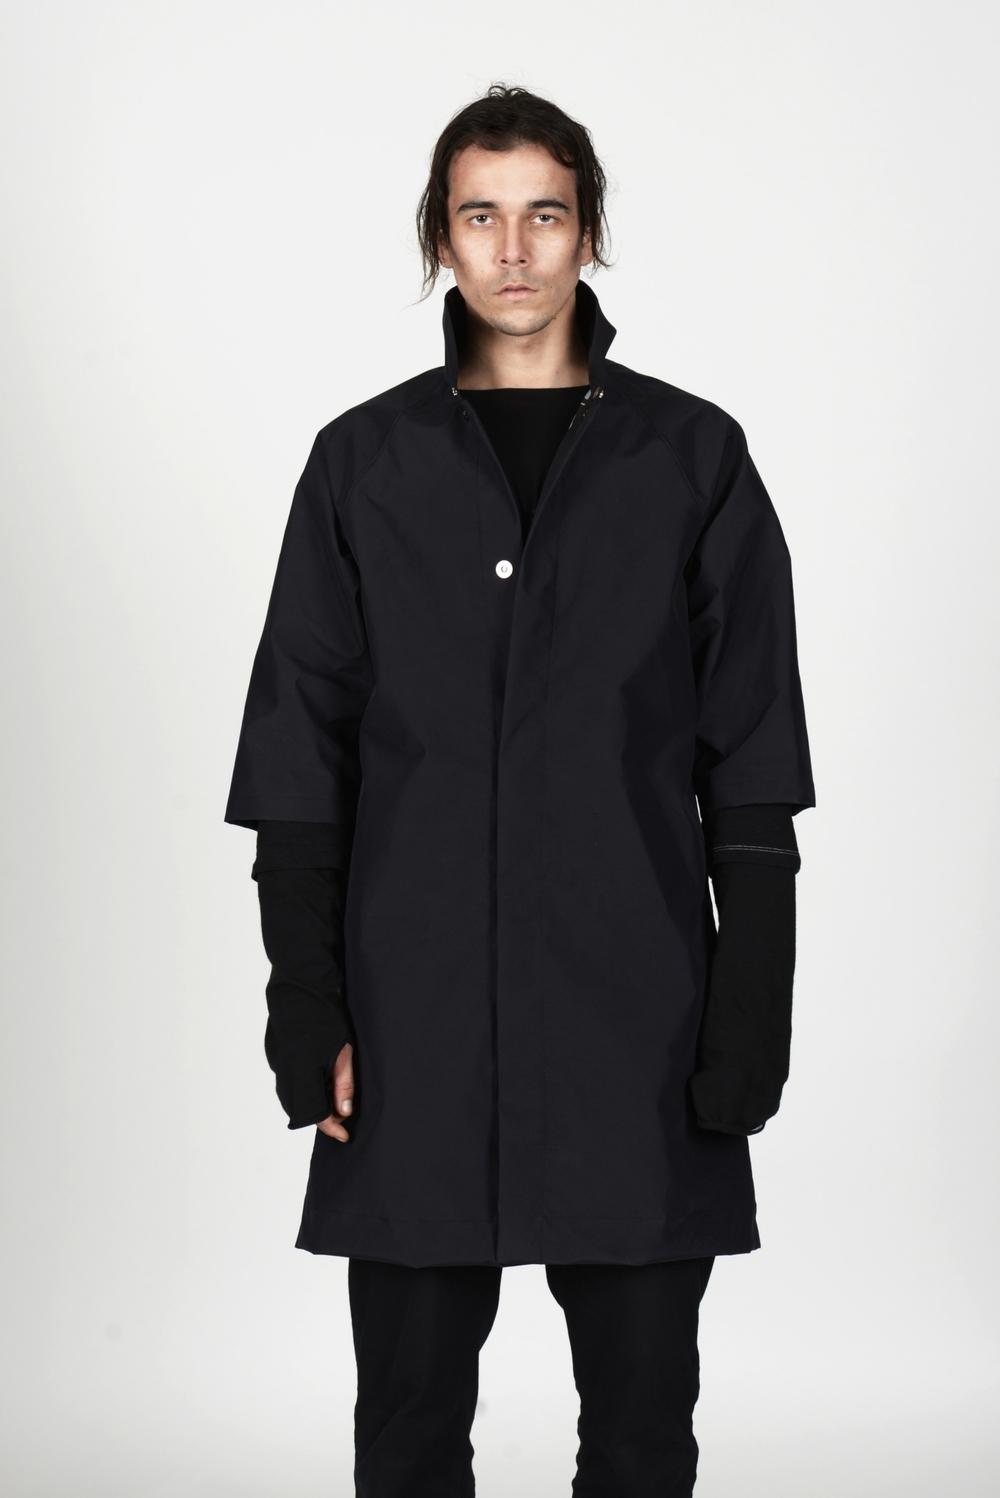 07 Heightened Sense Black Dragon Coat.jpg